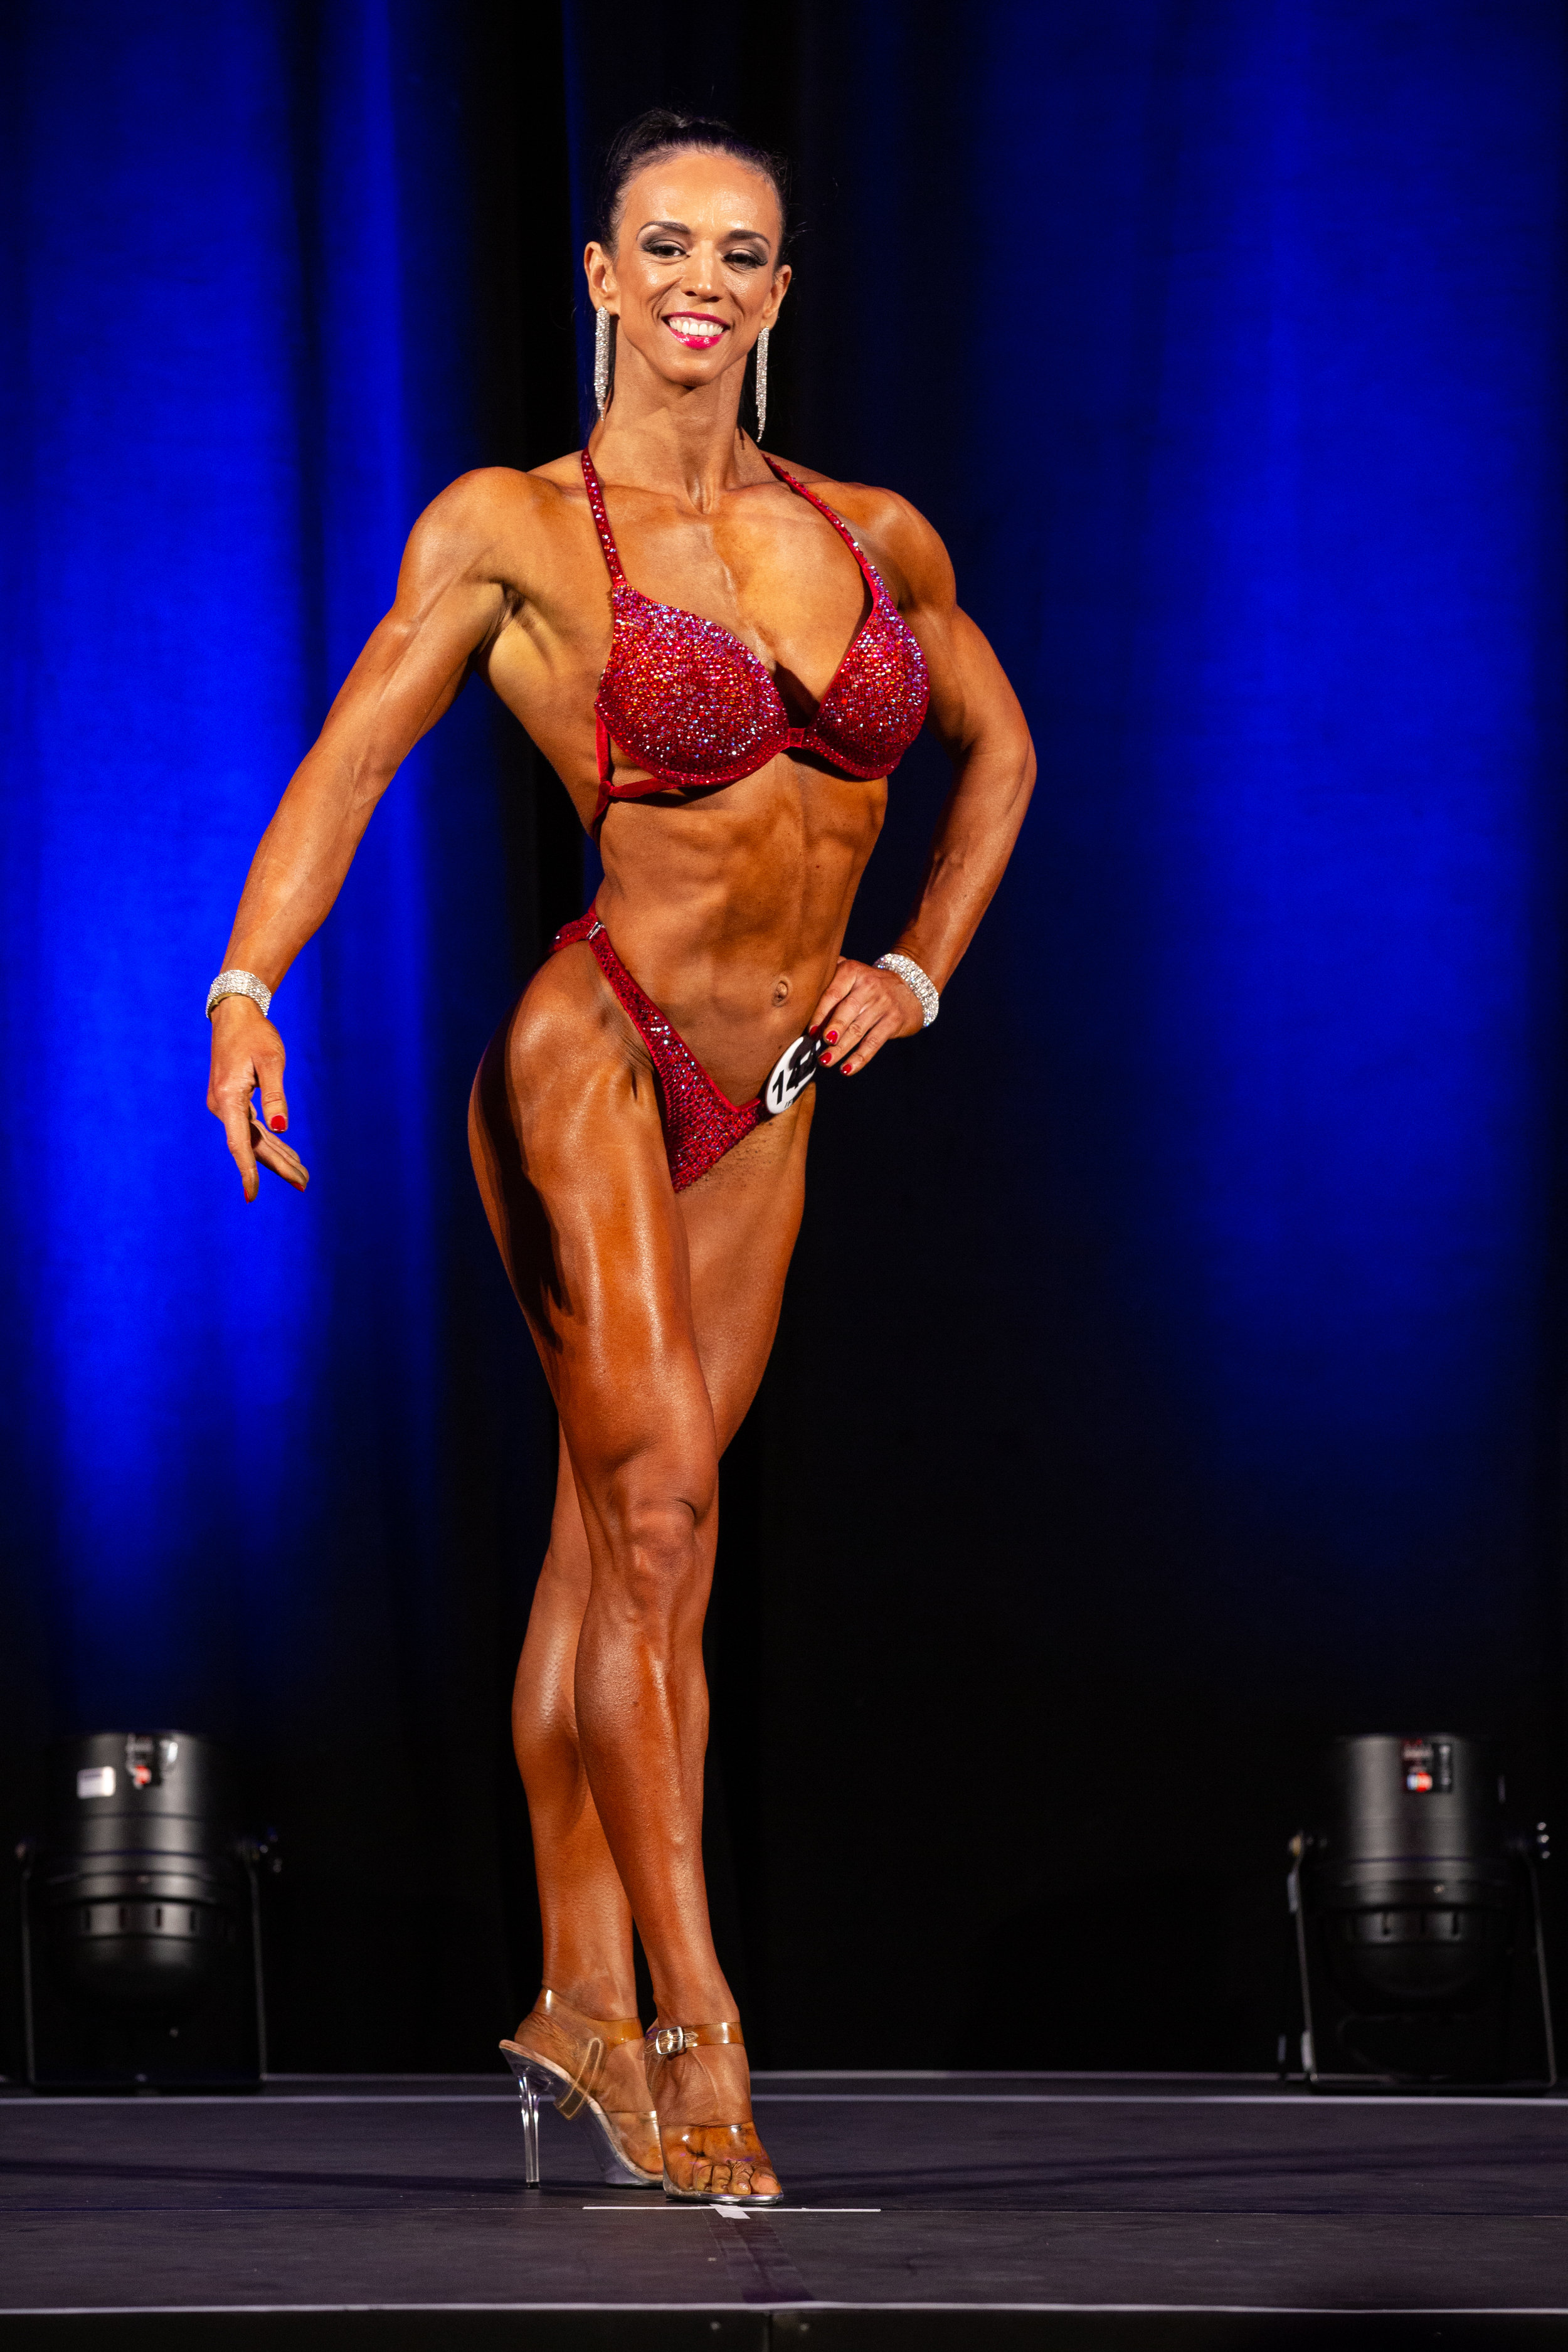 Olga Upelniece, pictured at last week's South Coast Championships. Photo by Kevin Horton.